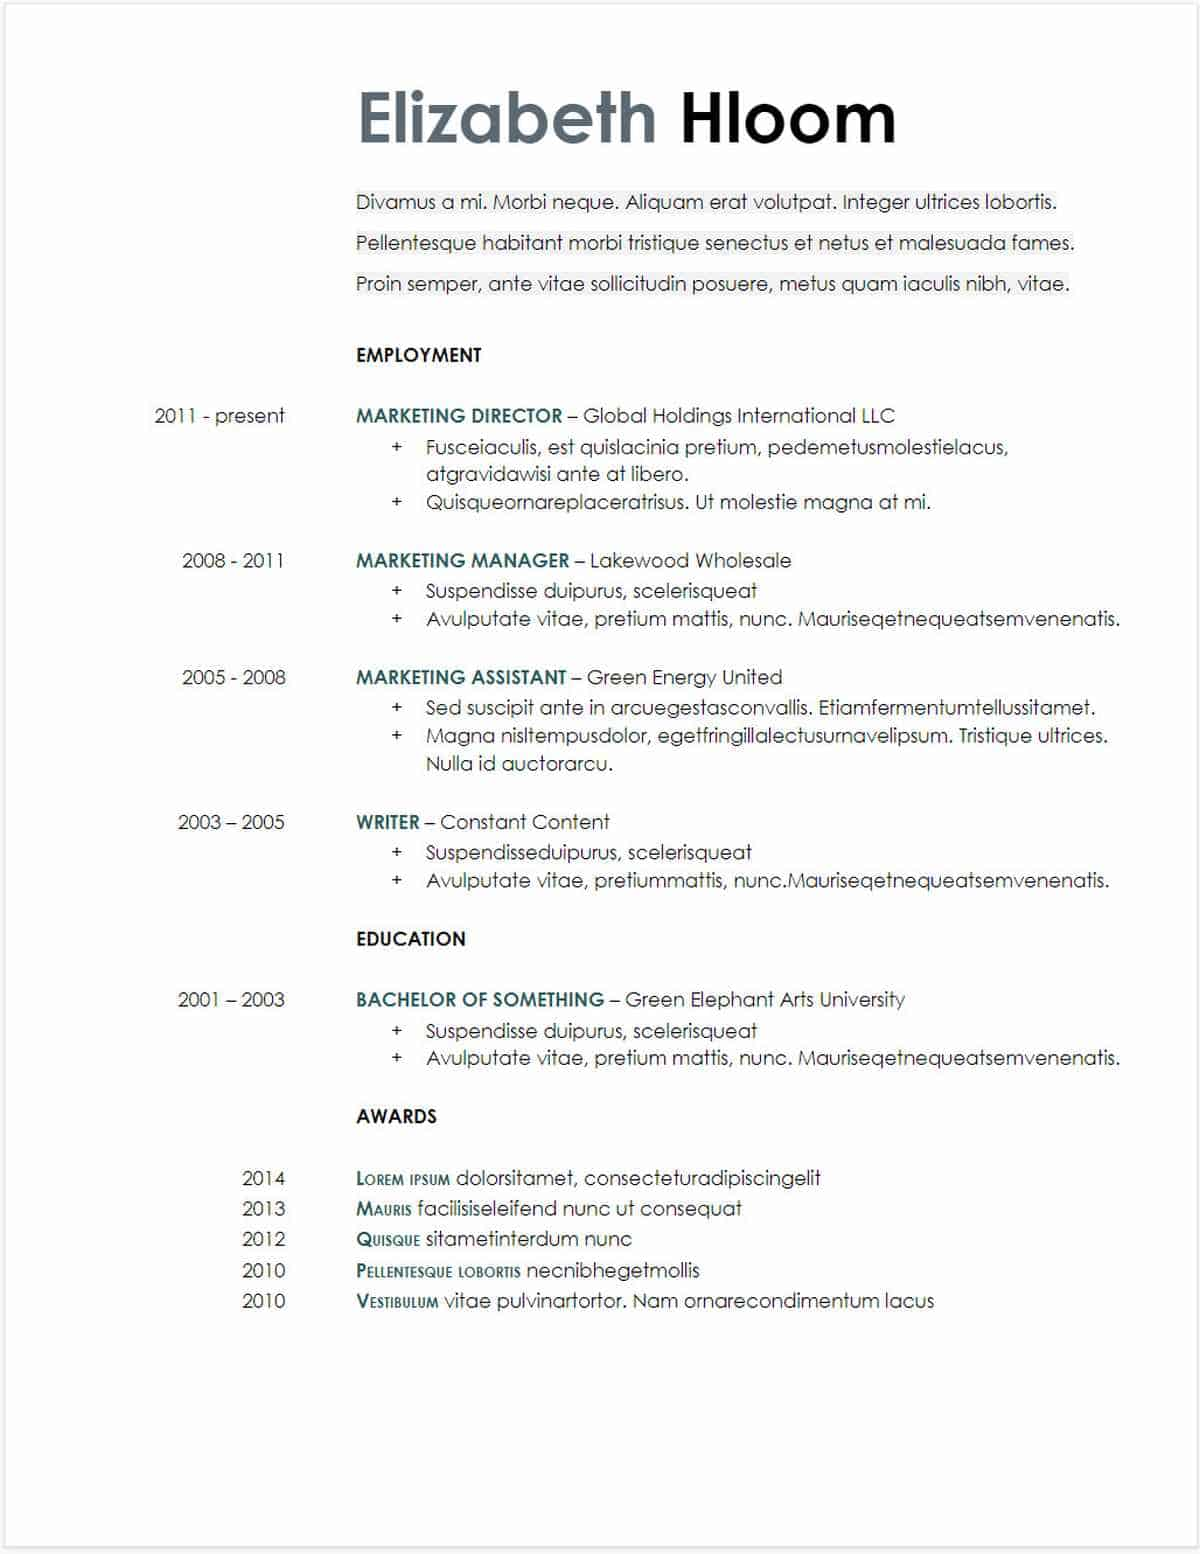 simple resume google docs examples blue side gdoc template free data science sample for Resume Google Docs Resume Examples